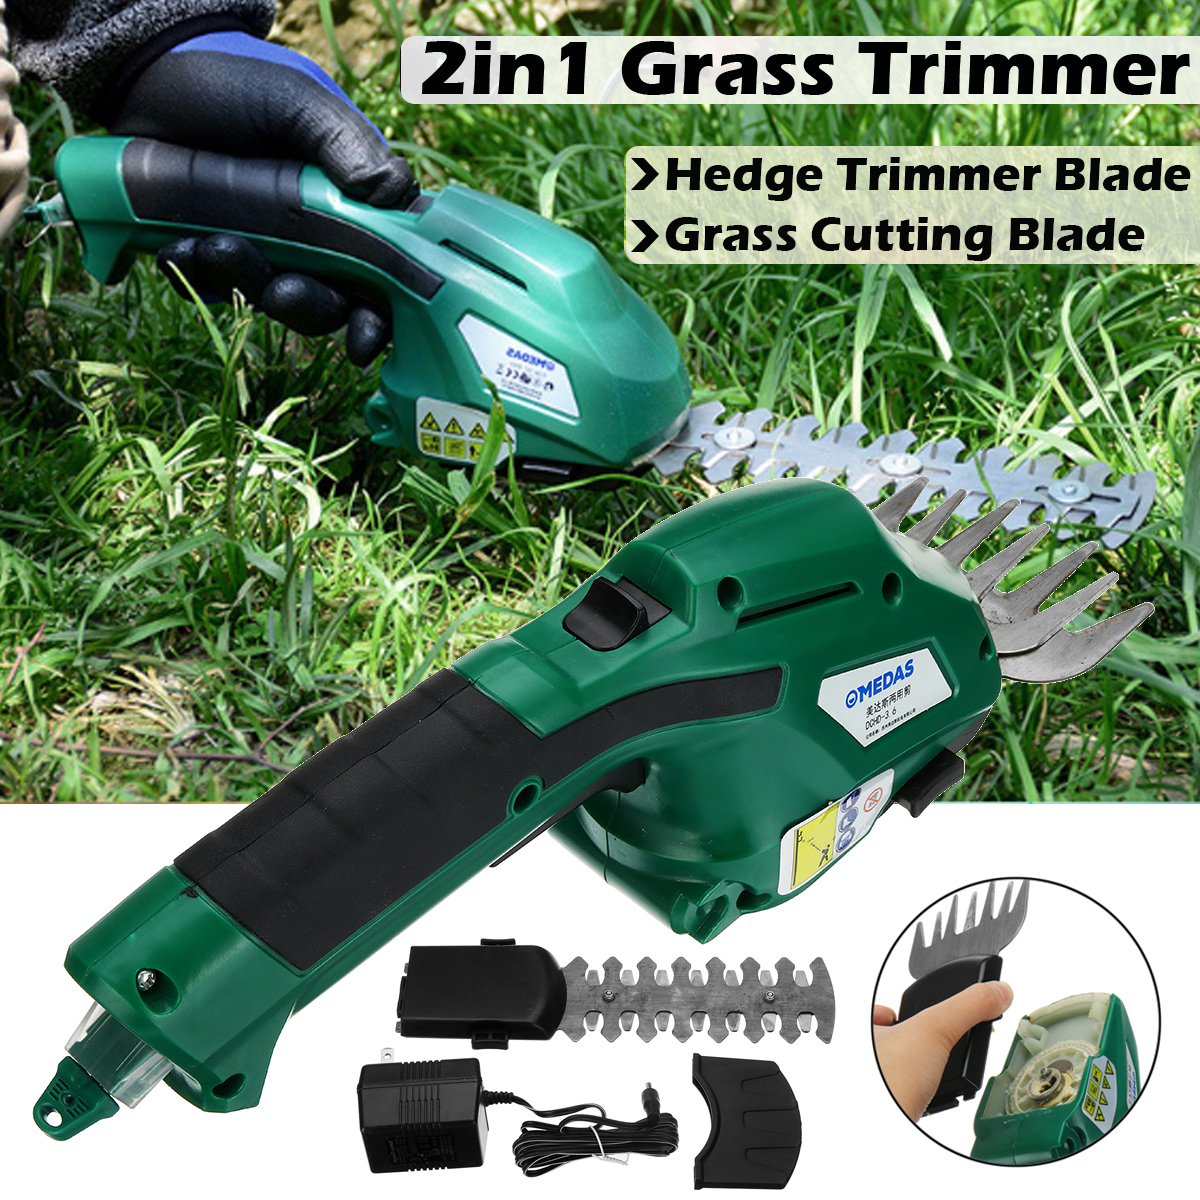 2 in 1 Li-Ion Battery Pruning Tool Cordless Hedge Grass Shears Trimmers Cutters Shrub Tool